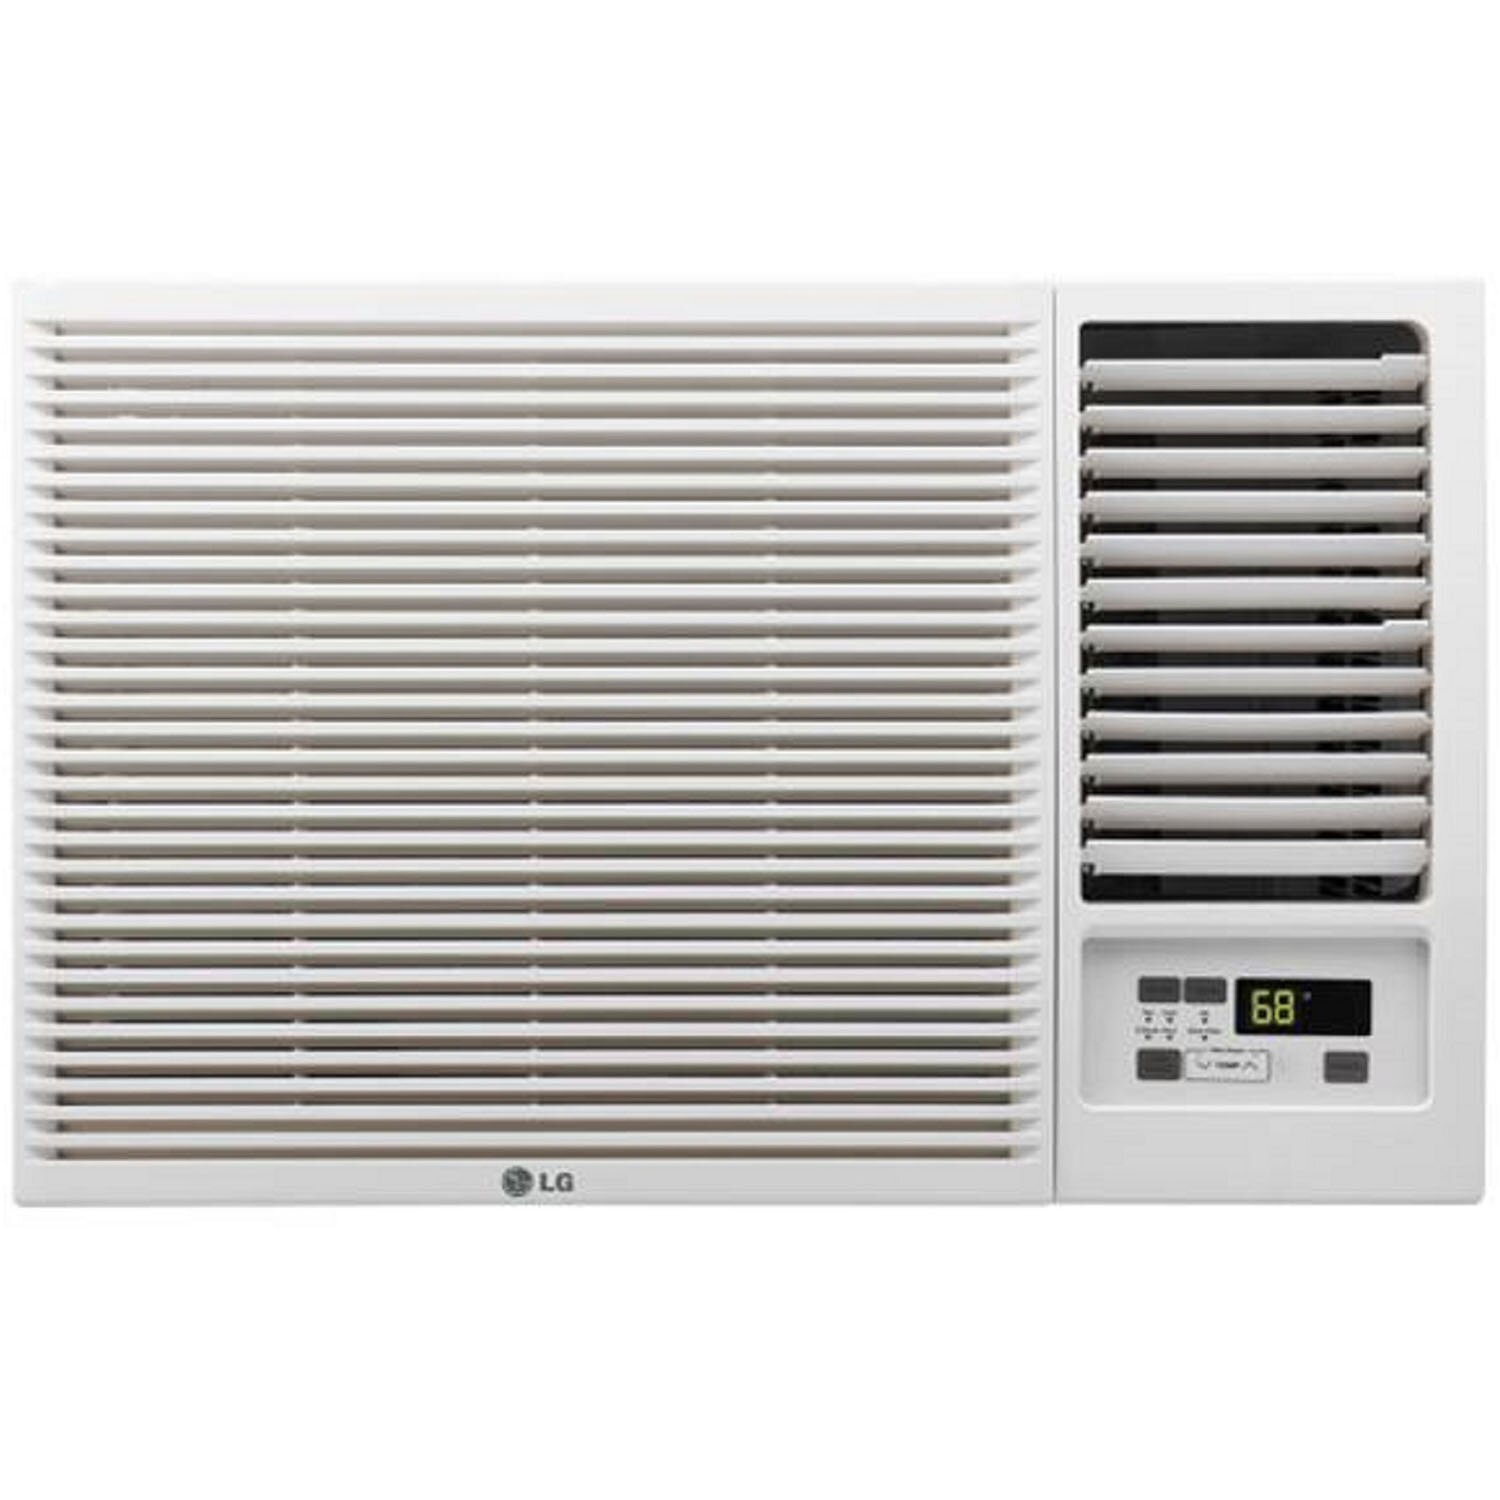 Lg 12000 btu window air conditioner wayfair for 12 000 btu window air conditioner